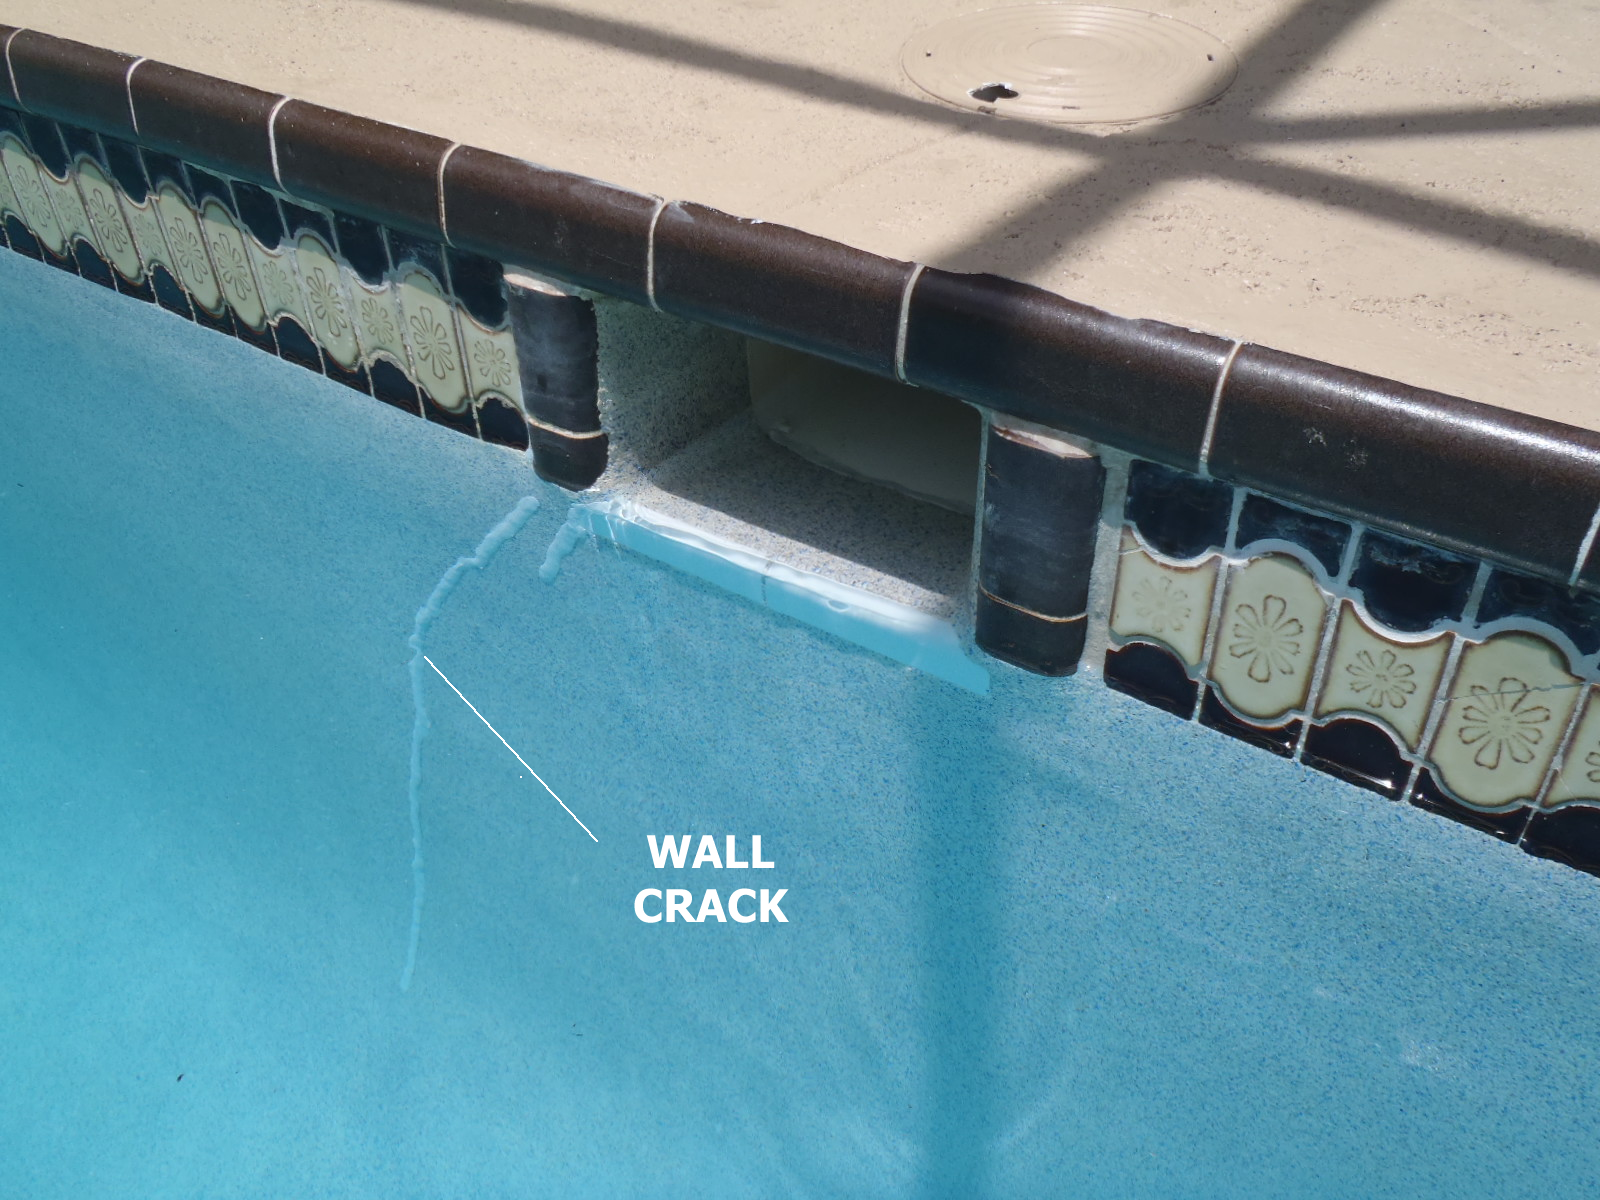 Fix crack in pool skimmer : skimmer20crack204 from llfuualman.cf size 1600 x 1200 jpeg 832kB